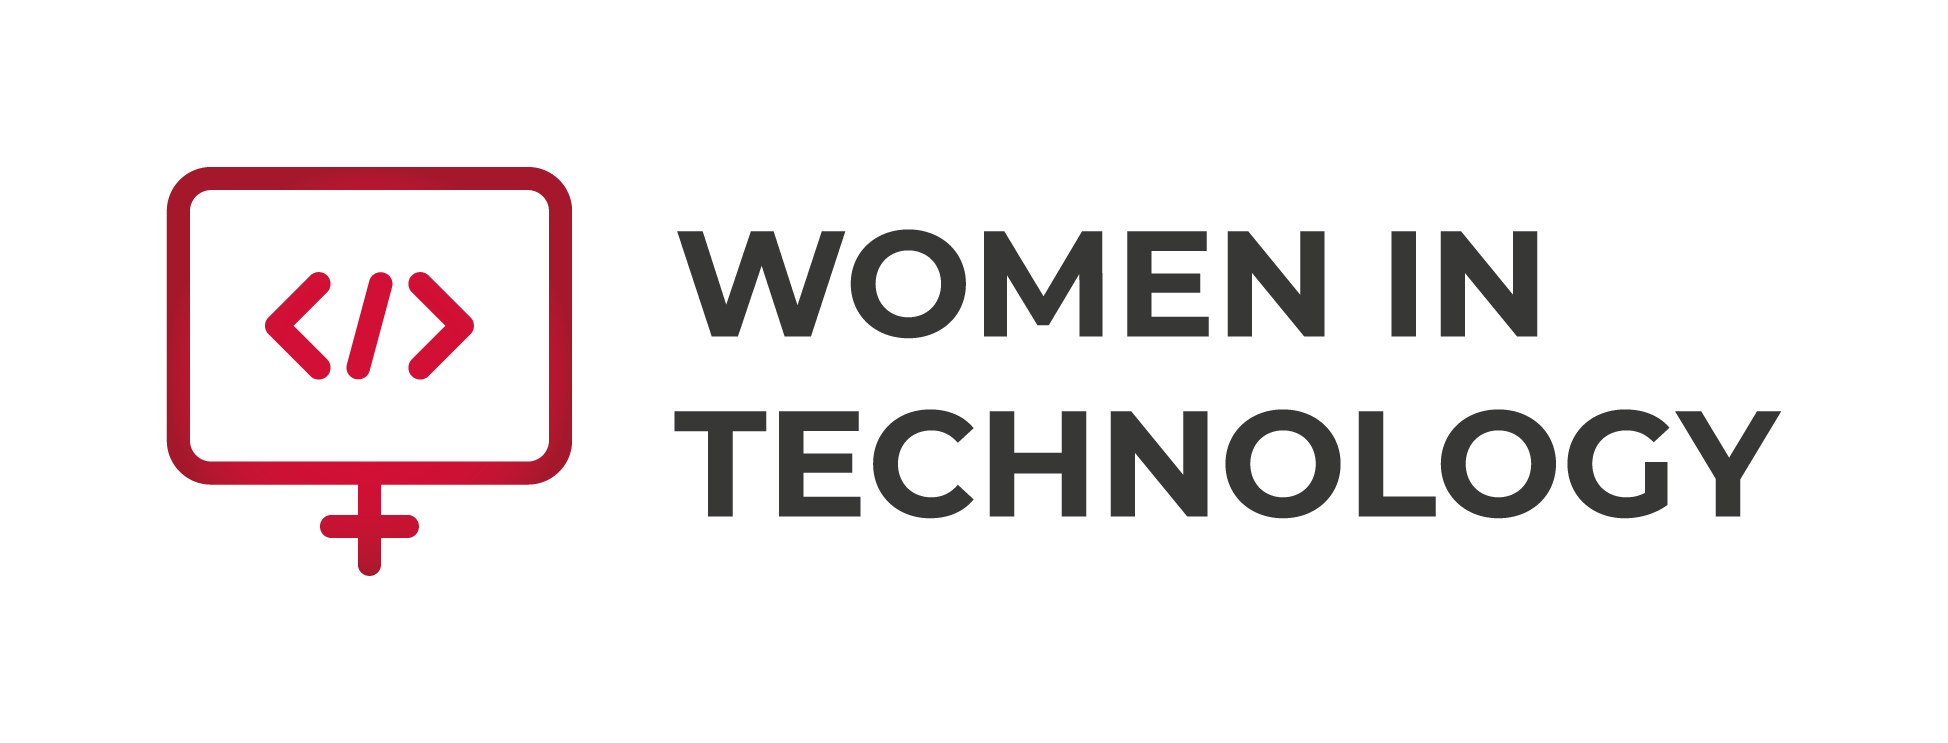 LOGO-Women-in-tech_-h